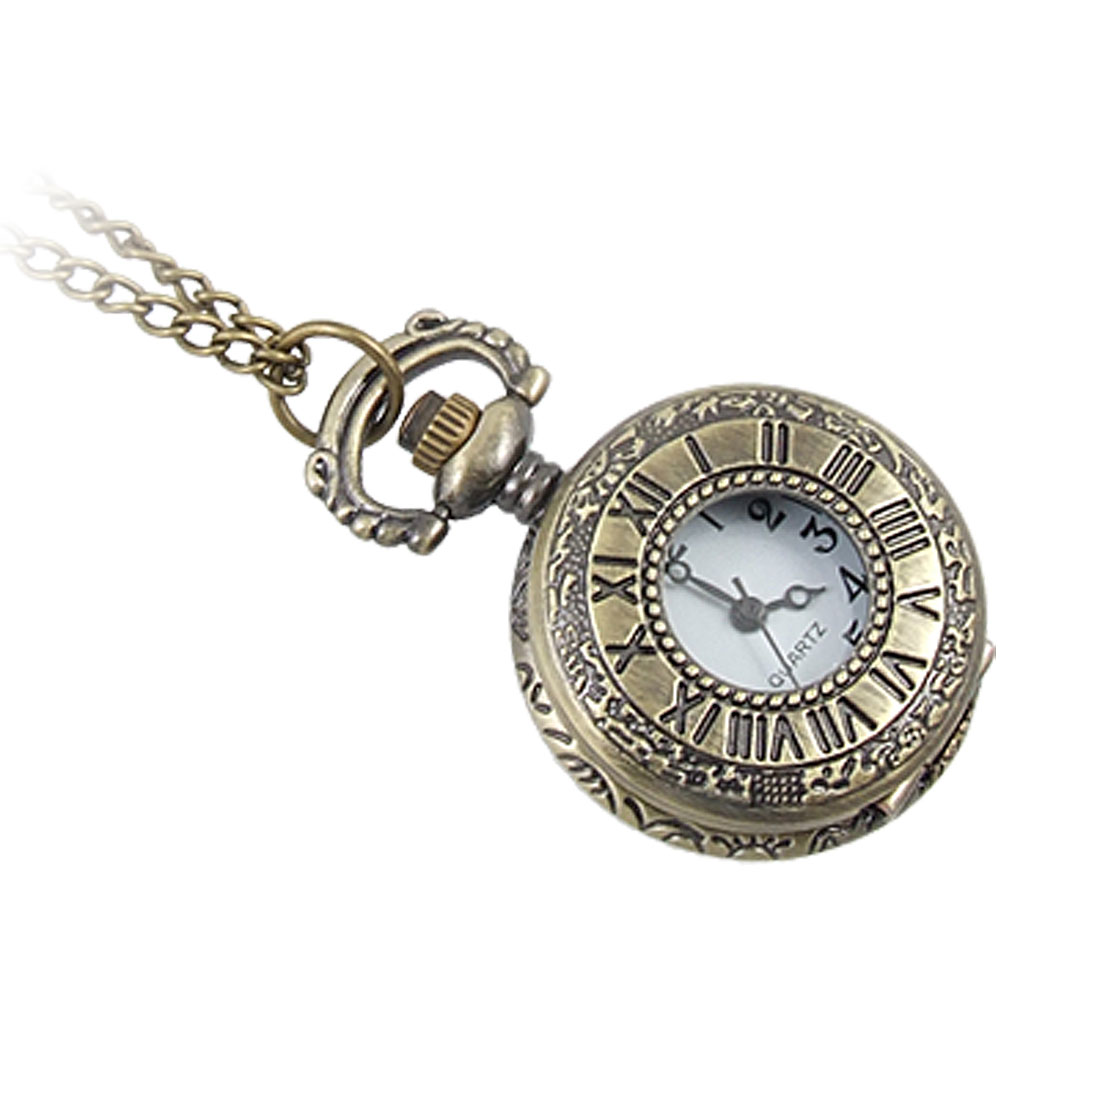 "Bronze Tone Embossed Necklace Pocket Quartz Watch 15.5"" for Lady"